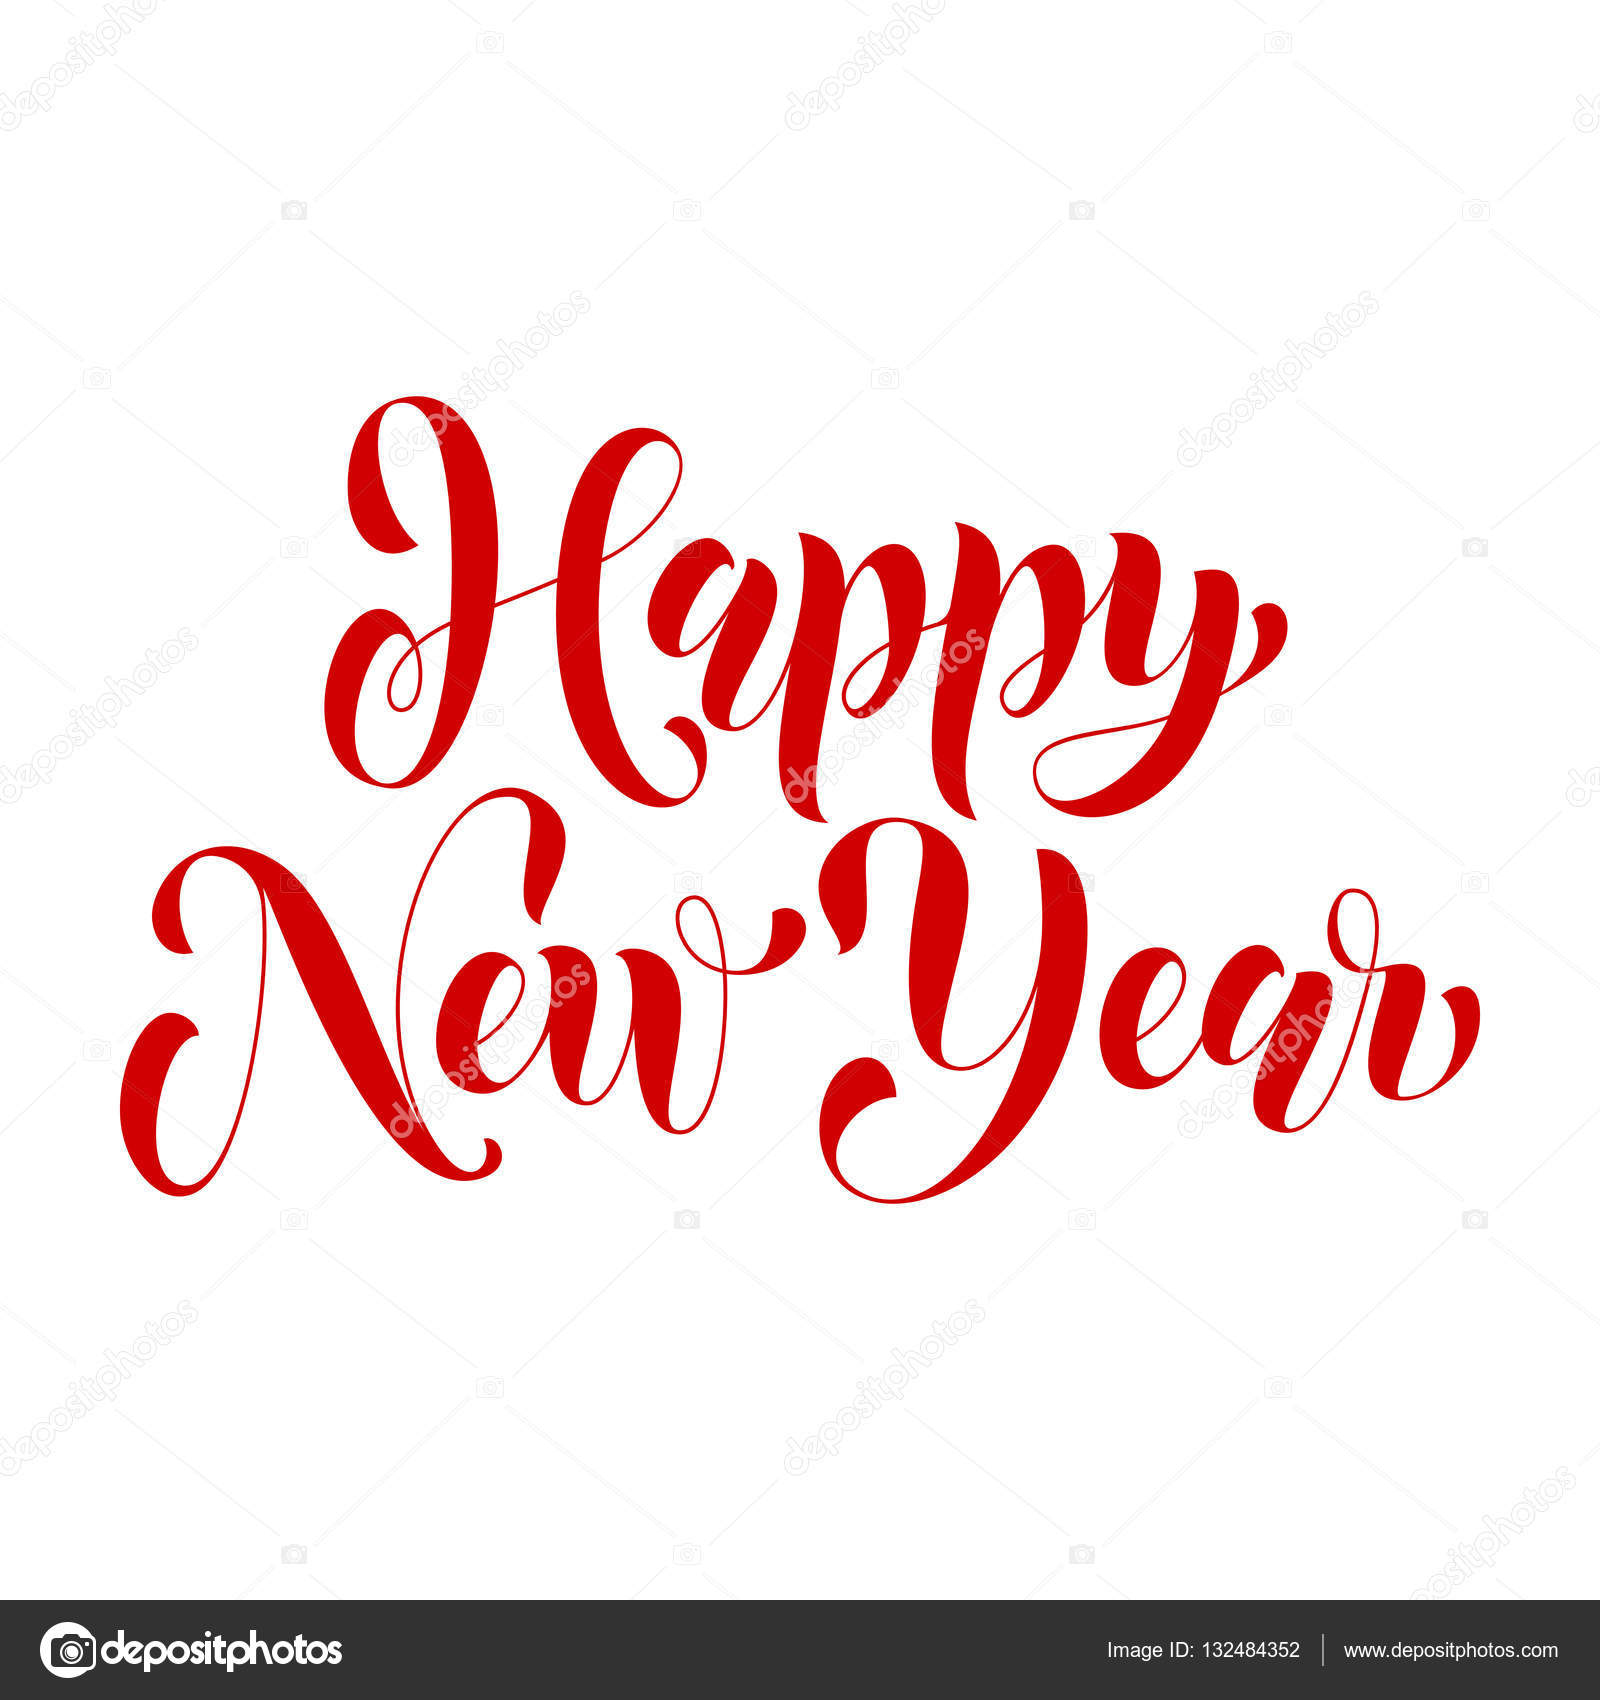 Happy New Year Lettering Design 11